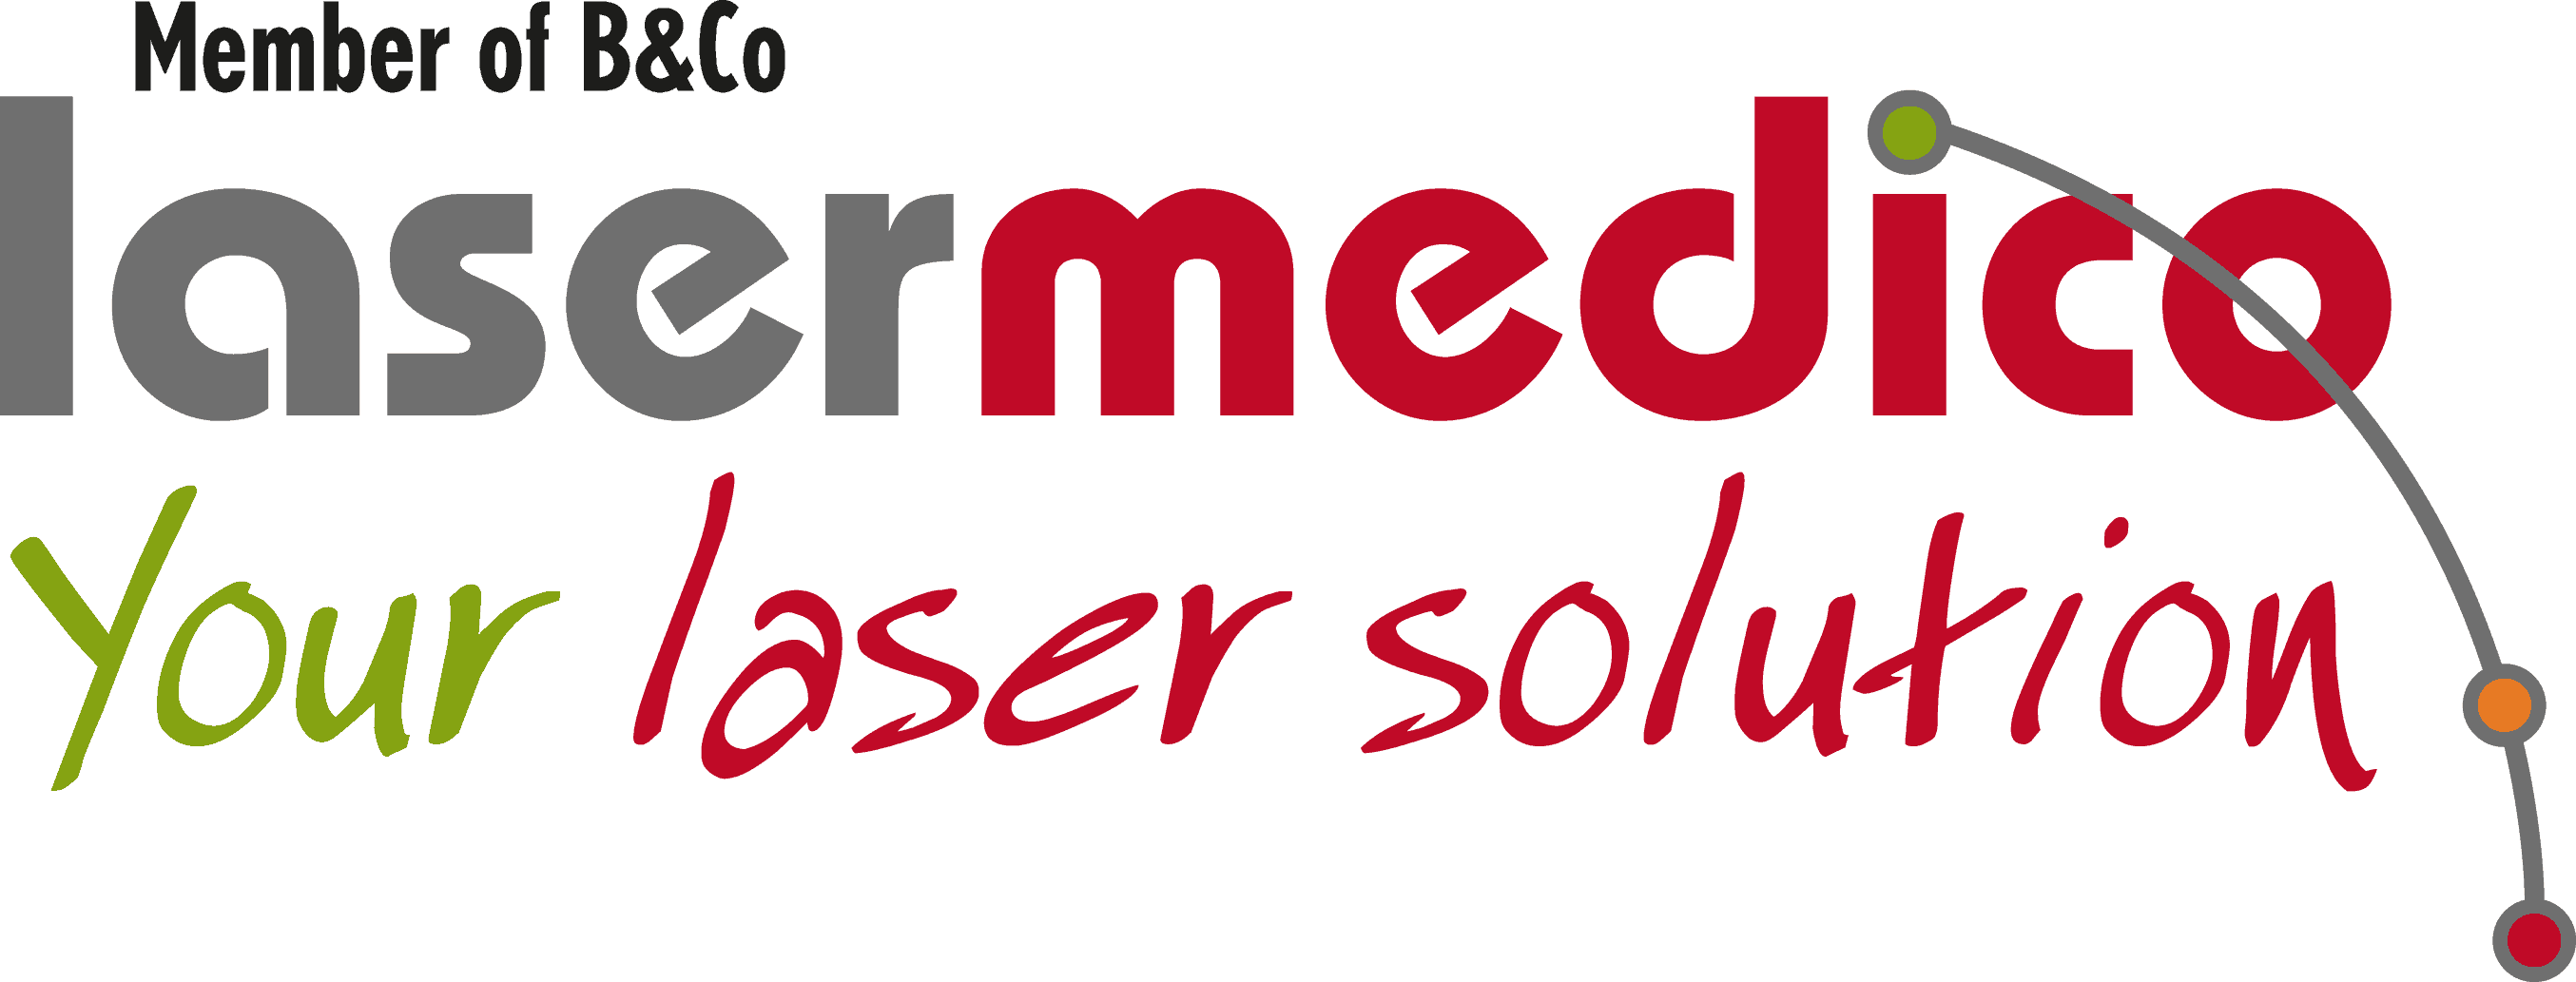 Lasermedico Your laser solution logo